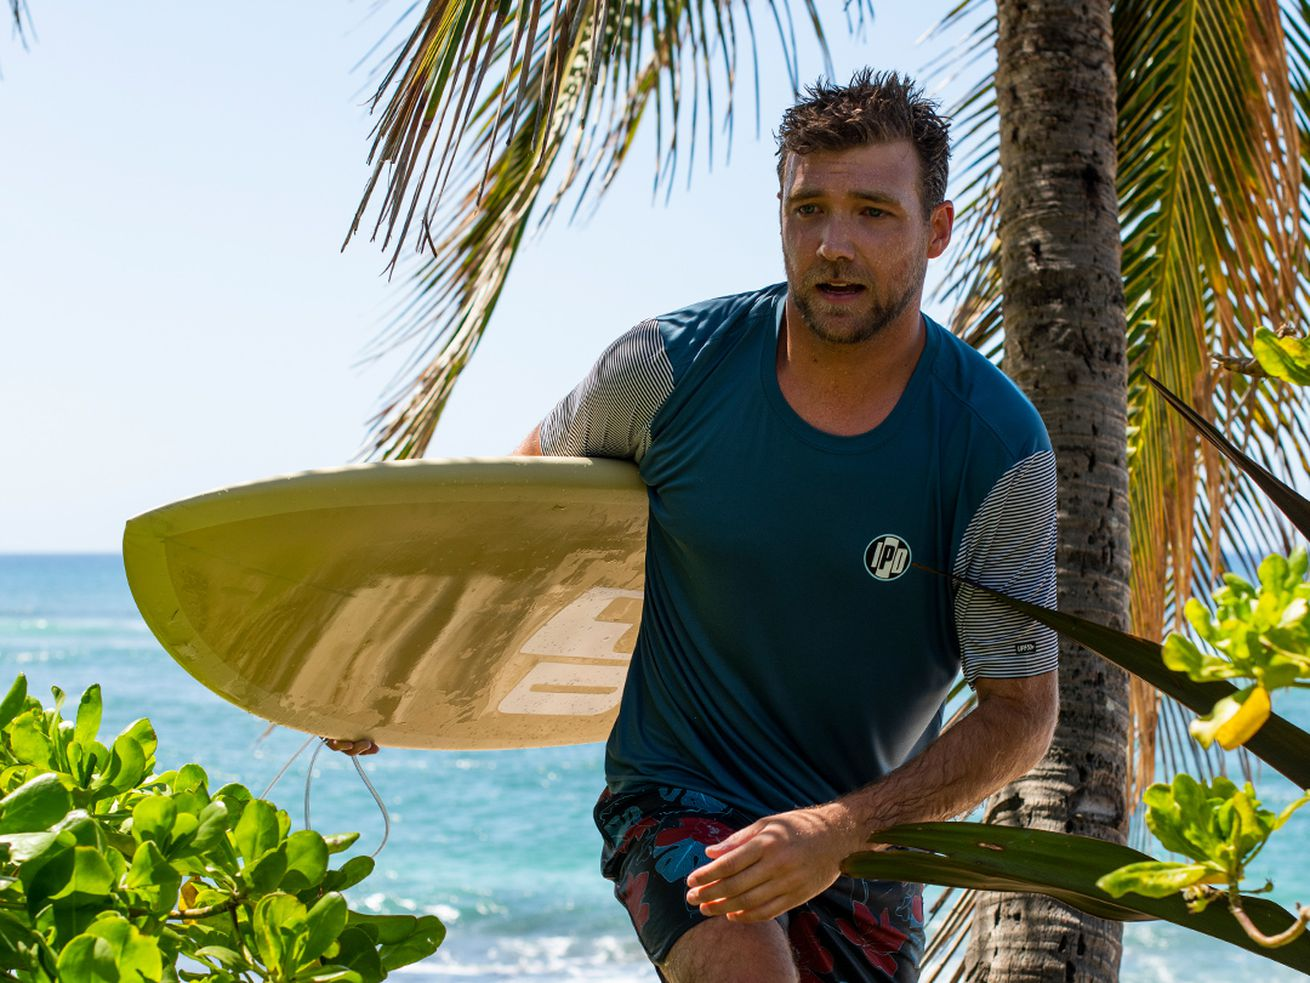 A surfer with a surfboard for IPD International.